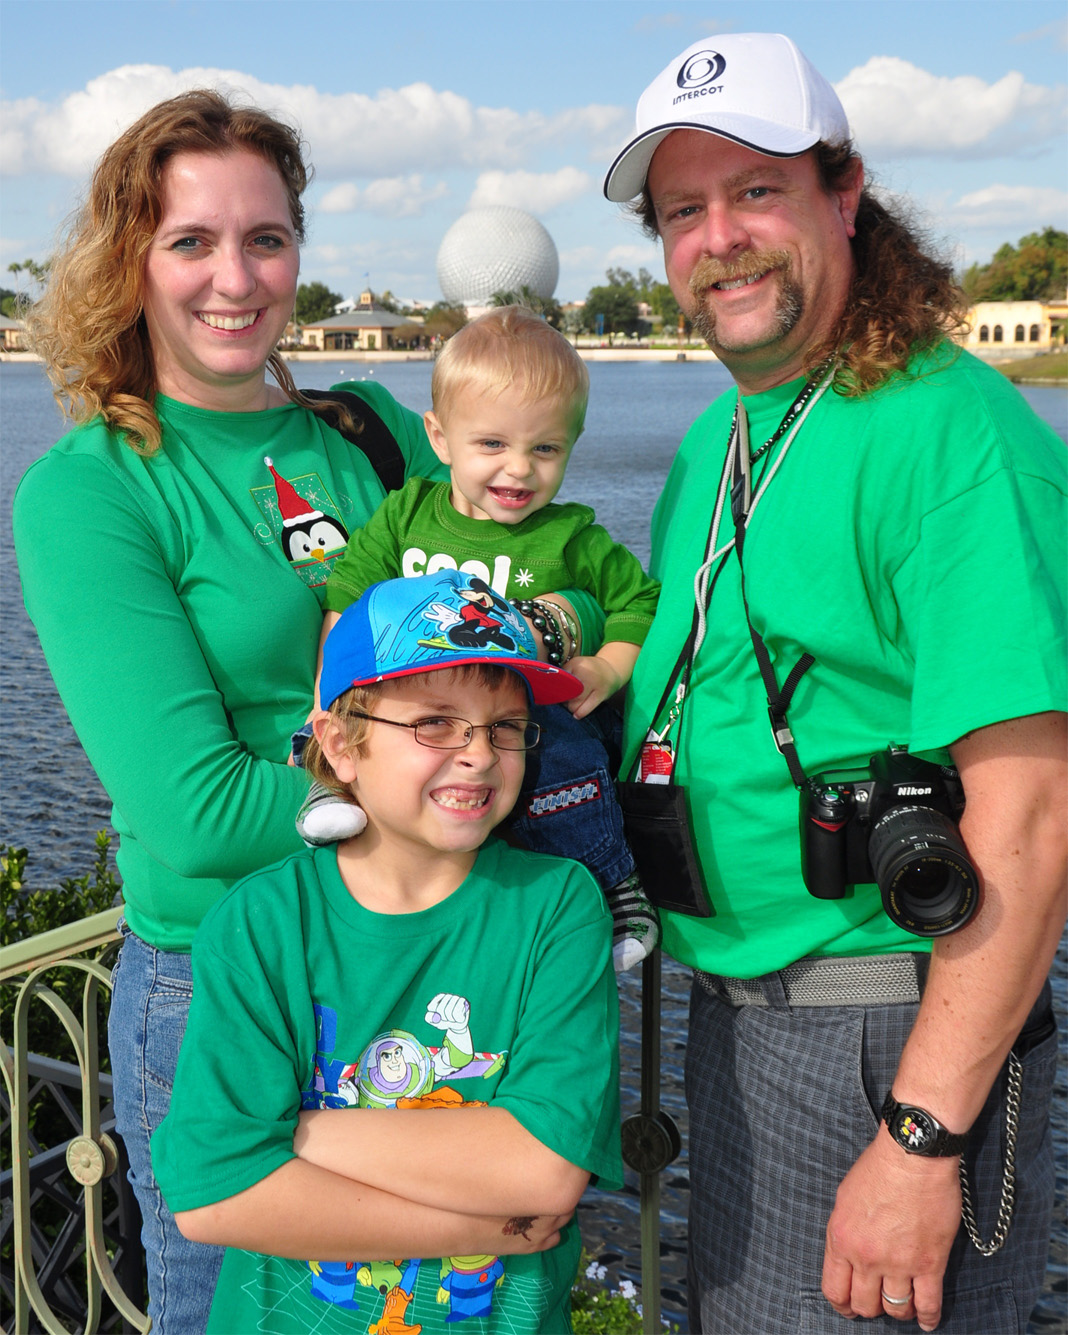 Capture every memory with Disney's PhotoPass Service | PassPorter.com